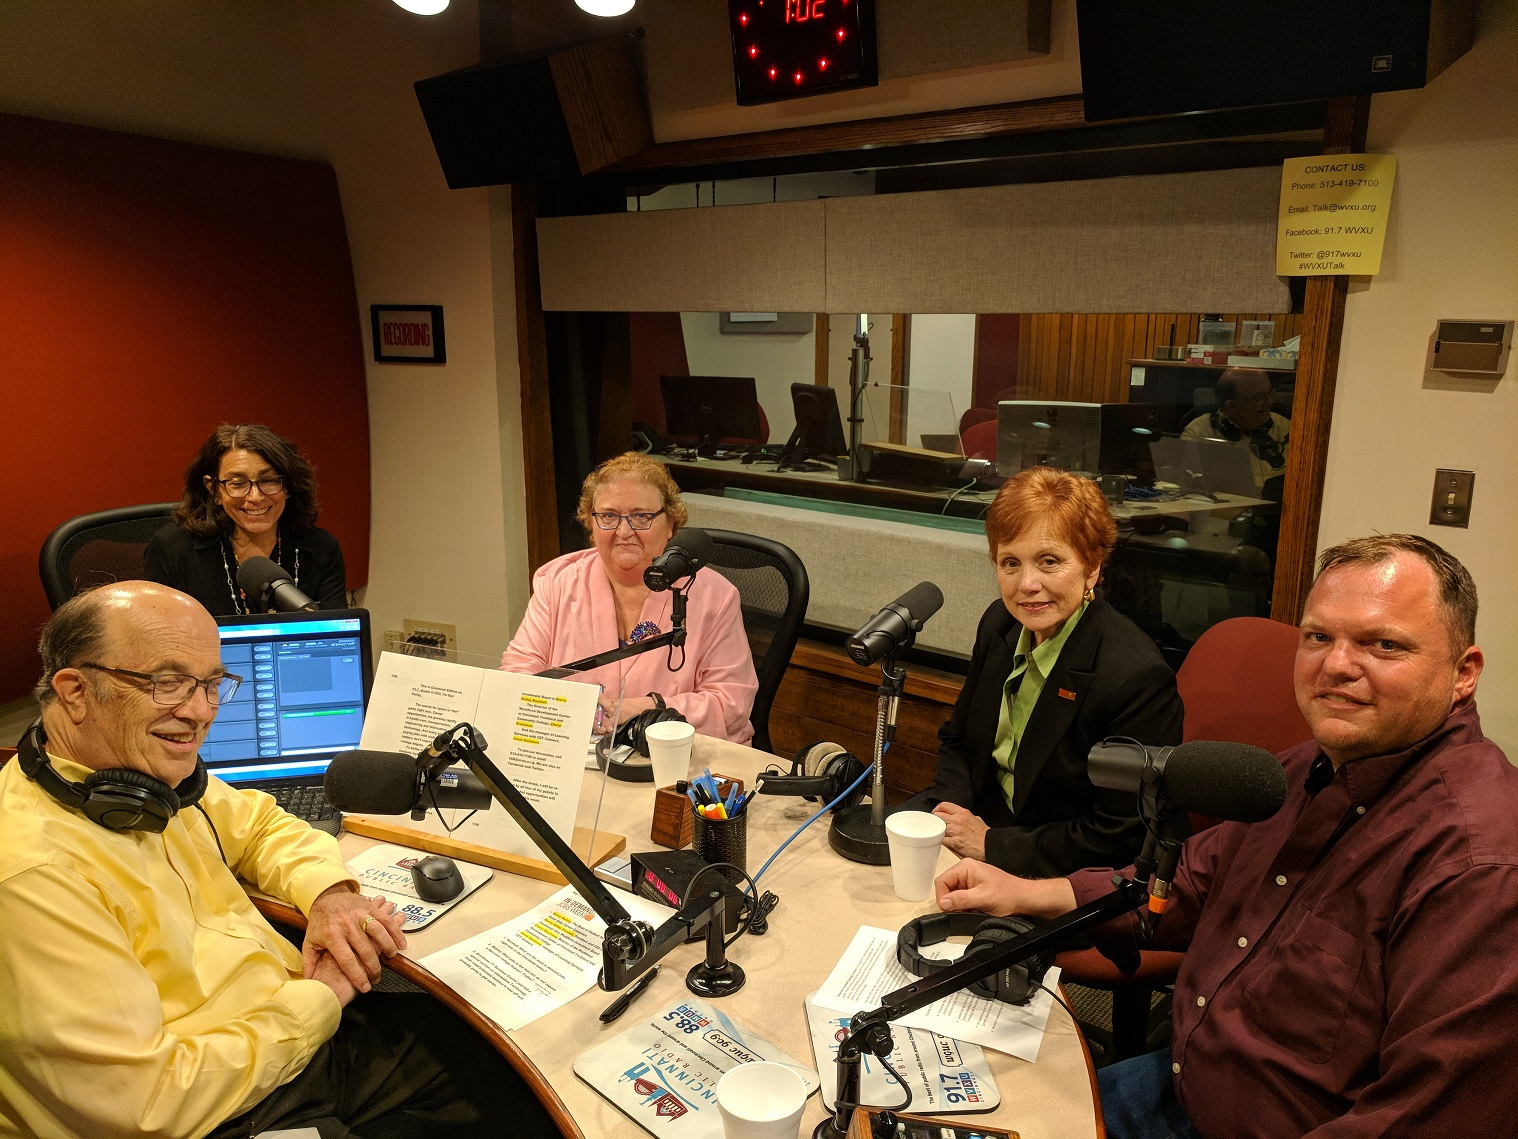 Group of four people seated around radio booth for broadcast discussion